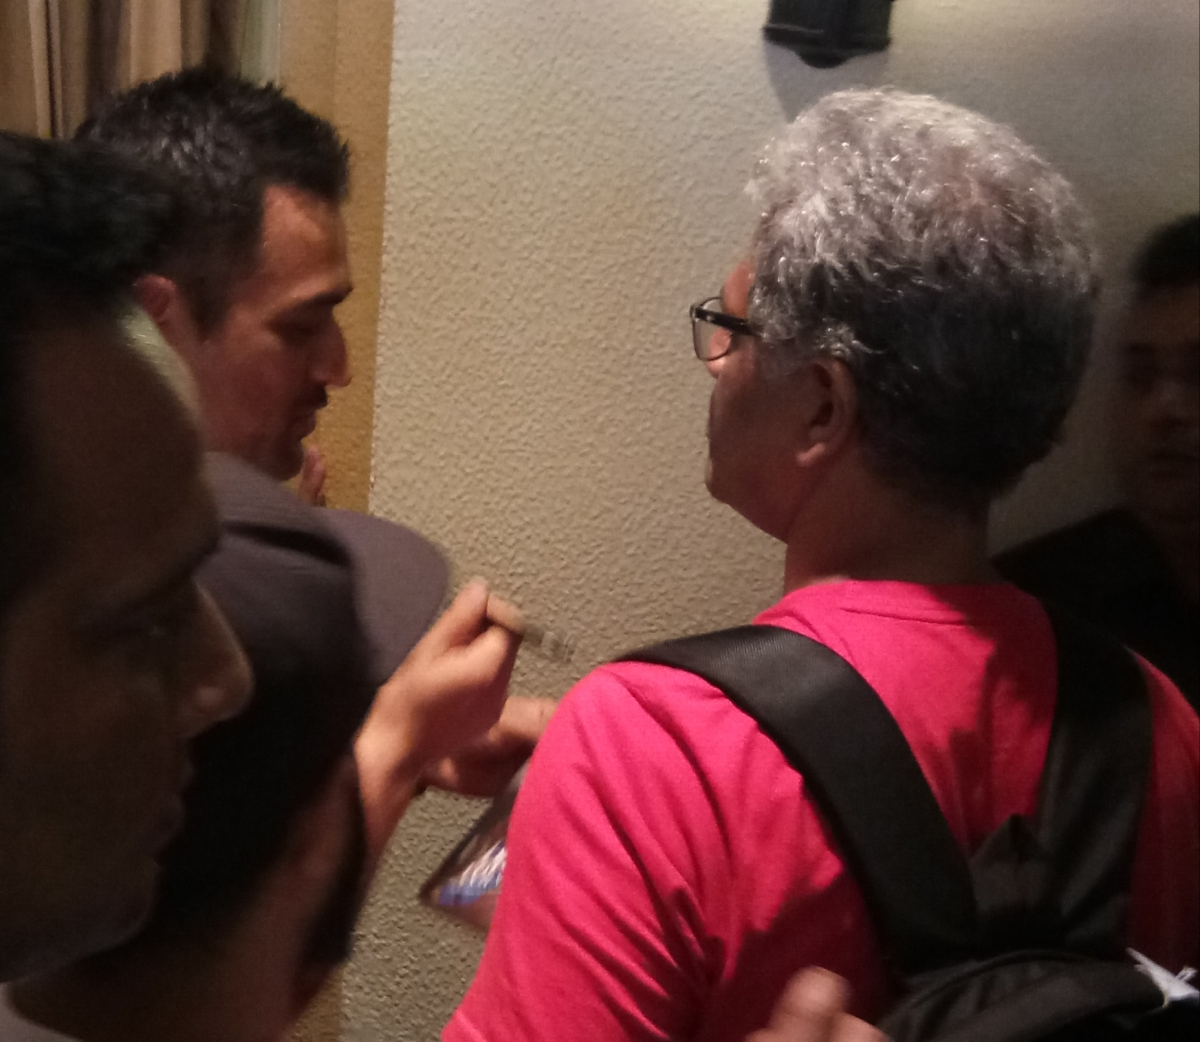 Dhoni and I exchange pleasantries before I ask him to sign  my copy of his book 'The Dhoni Touch' in August 2018